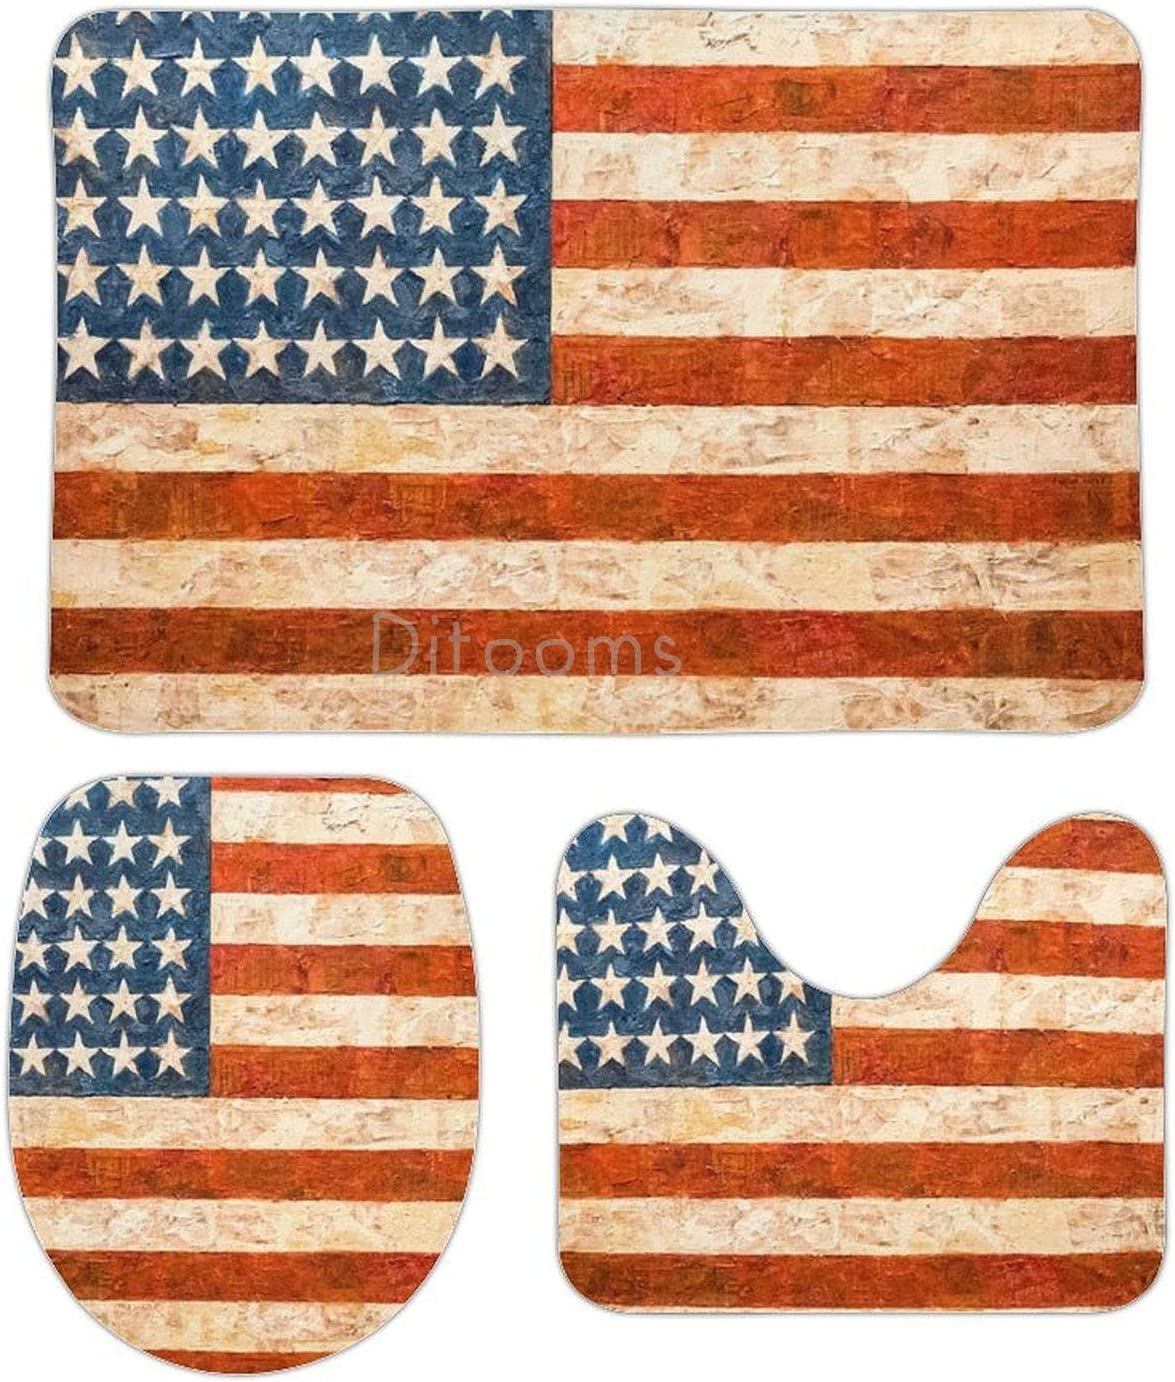 3 Pieces Luxury NEW before selling ☆ goods Set New York Wooden USA Mats Flag Rug Sli Bathroom Non